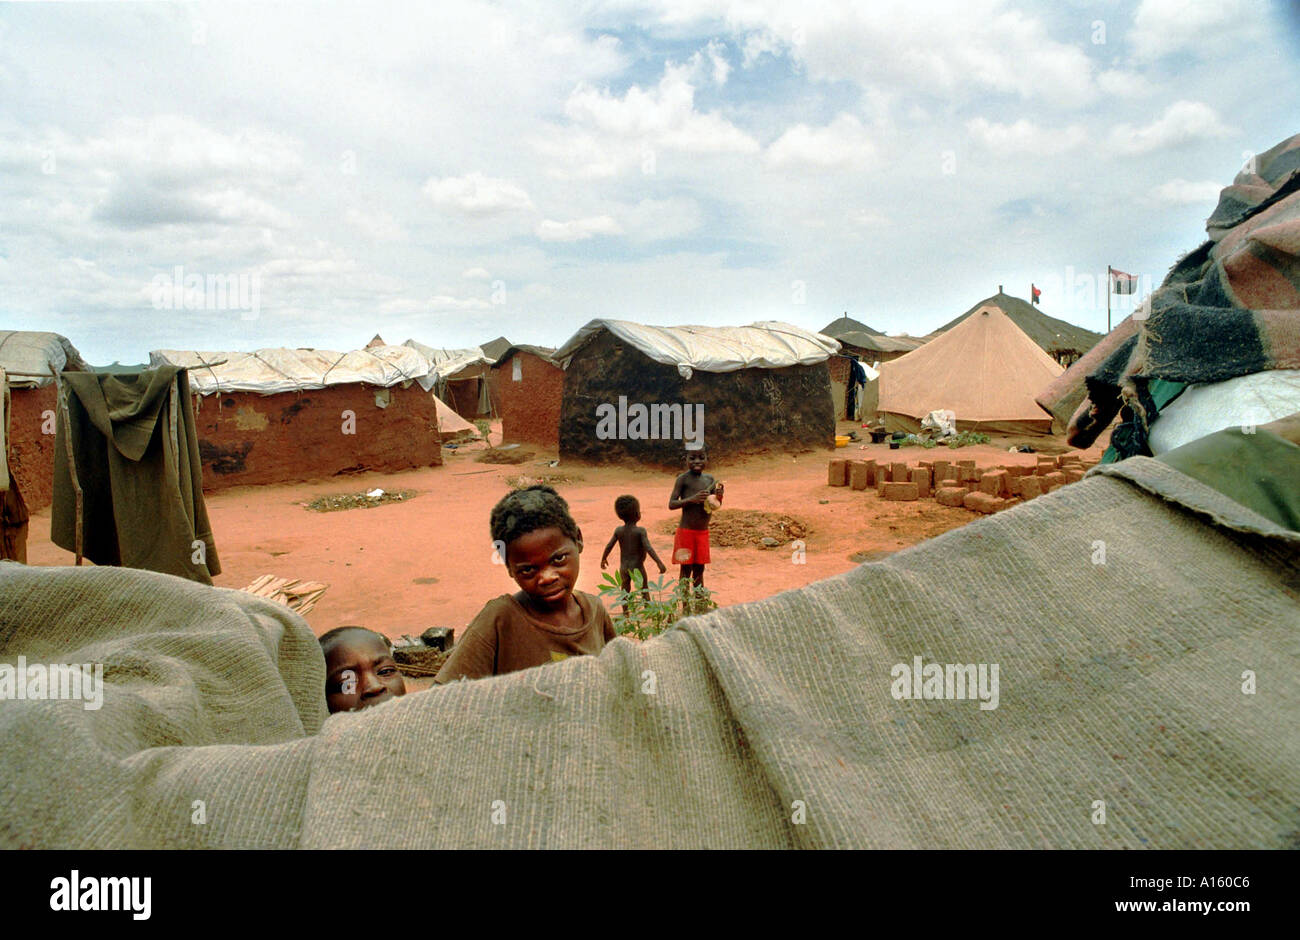 A refugee camp outside the capital of Luanda in Angola is shown in this file photo. President Jose Eduardo dos Santos who has - Stock Image